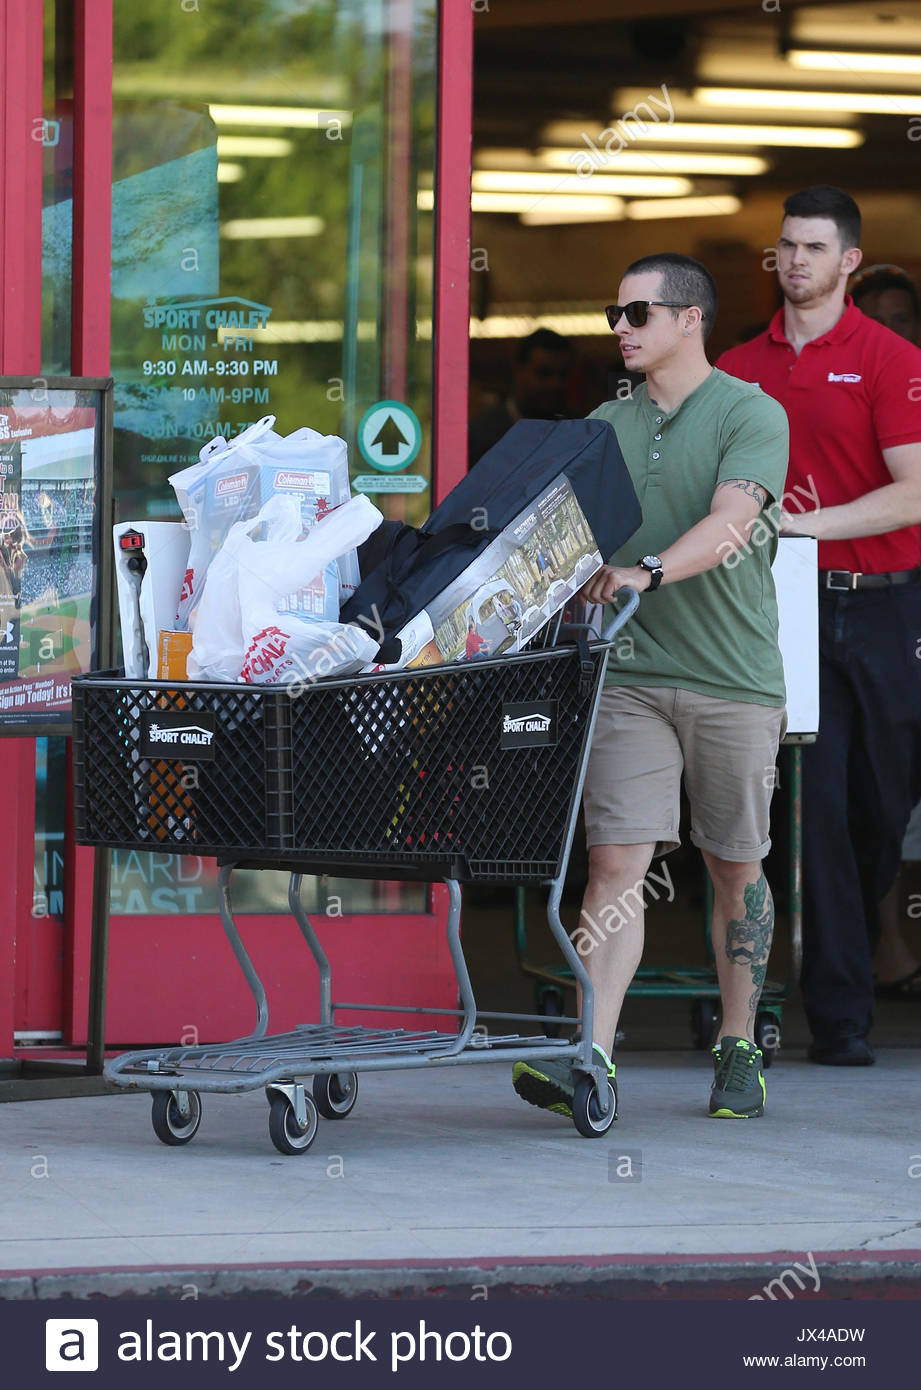 Casper Smart was out and about today shopping for c&ing supplies and work out gear at Sport Chalet. He purchased a tent as well as a UFC punching bag ...  sc 1 st  Alamy & Casper Smart. Casper Smart was out and about today shopping for ...